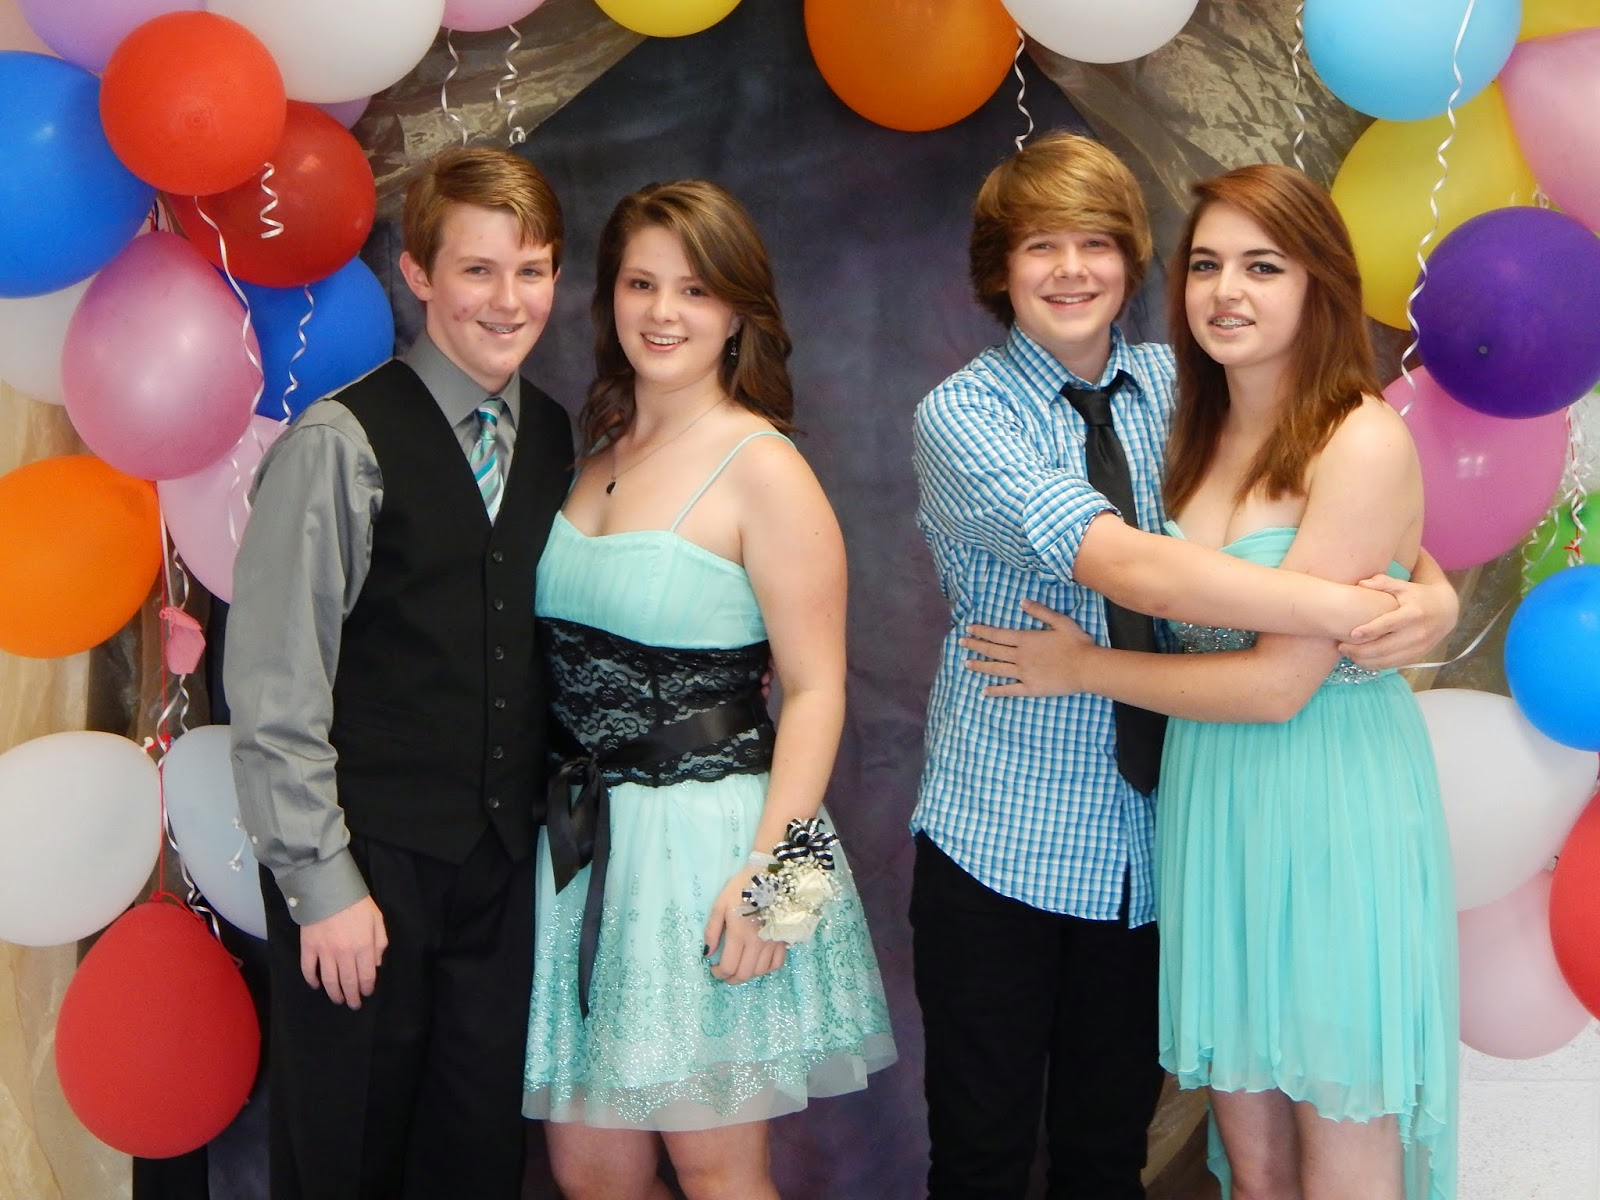 Rossview Middle School Post Rms 8th Grade Dance